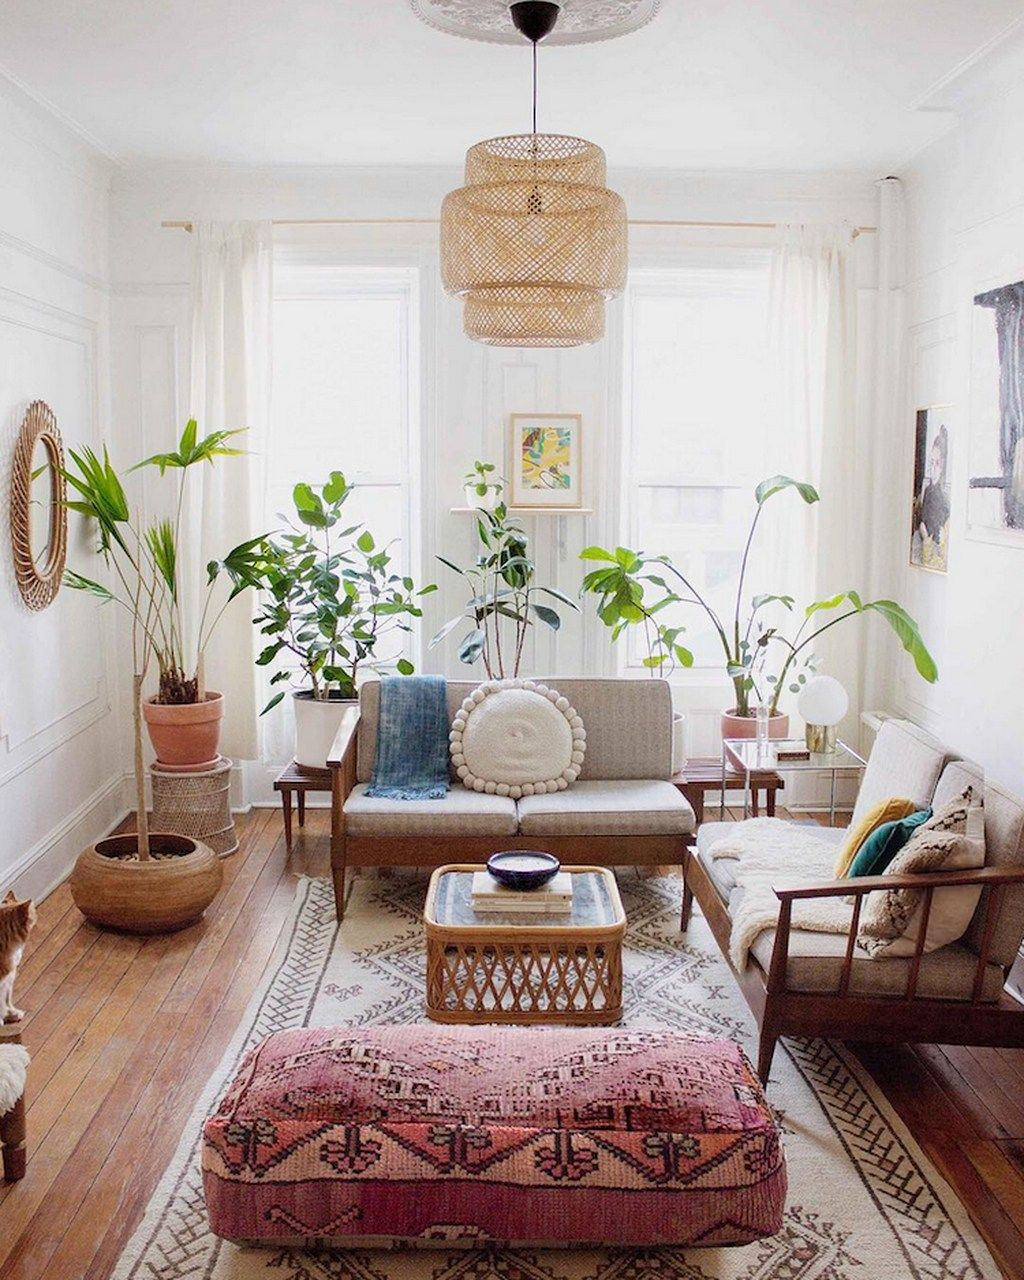 Small Boho Living Room: 34 Awesome Farmhemian Decor Ideas To Apply Now